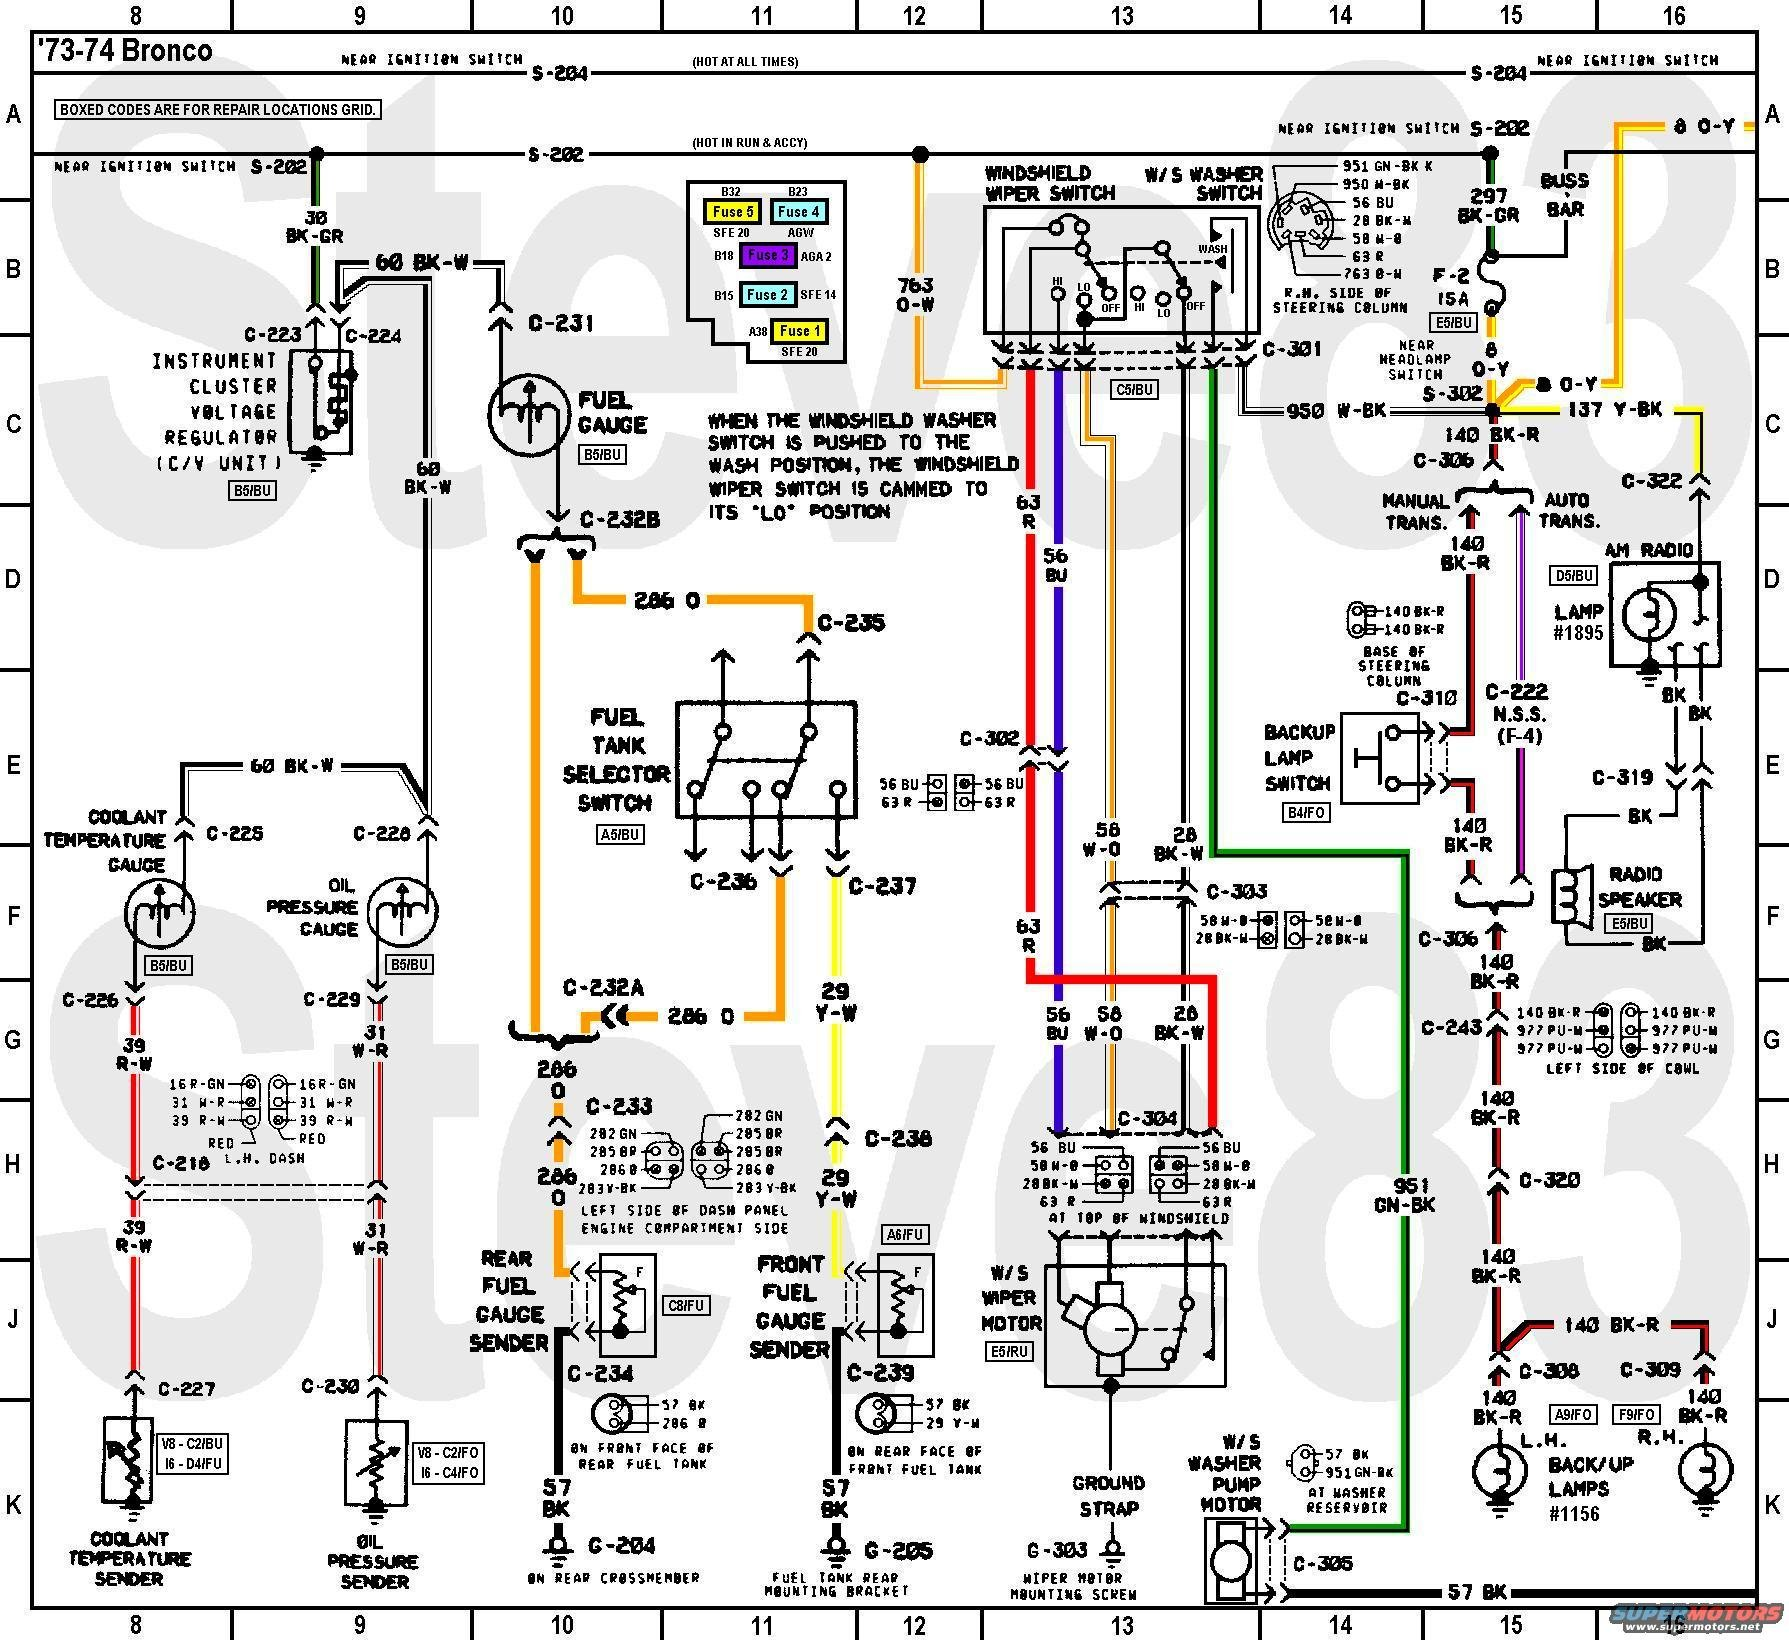 76 Ford F100 Wiring Diagram | Wiring Diagram  Ford F Alternator Wiring Diagram on ford f150 wiring diagram, 1971 ford f100 power steering, 1946 ford truck wiring diagram, 1971 ford f100 carburetor, 1970 ford wiring diagram, 1971 ford f100 tires, 1992 chevy silverado 1500 wiring diagram, 1971 ford f100 parts, ford 800 wiring diagram, basic ford solenoid wiring diagram, 1971 ford f100 specifications, 1971 ford f100 4x4, 1971 chevrolet camaro wiring diagram, 1971 chevy nova wiring diagram, 1955 ford wiring diagram, 1971 oldsmobile cutlass wiring diagram, ford f-250 wiring diagram, 1971 chevrolet el camino wiring diagram, 1971 ford f100 engine, 1966 ford wiring diagram,